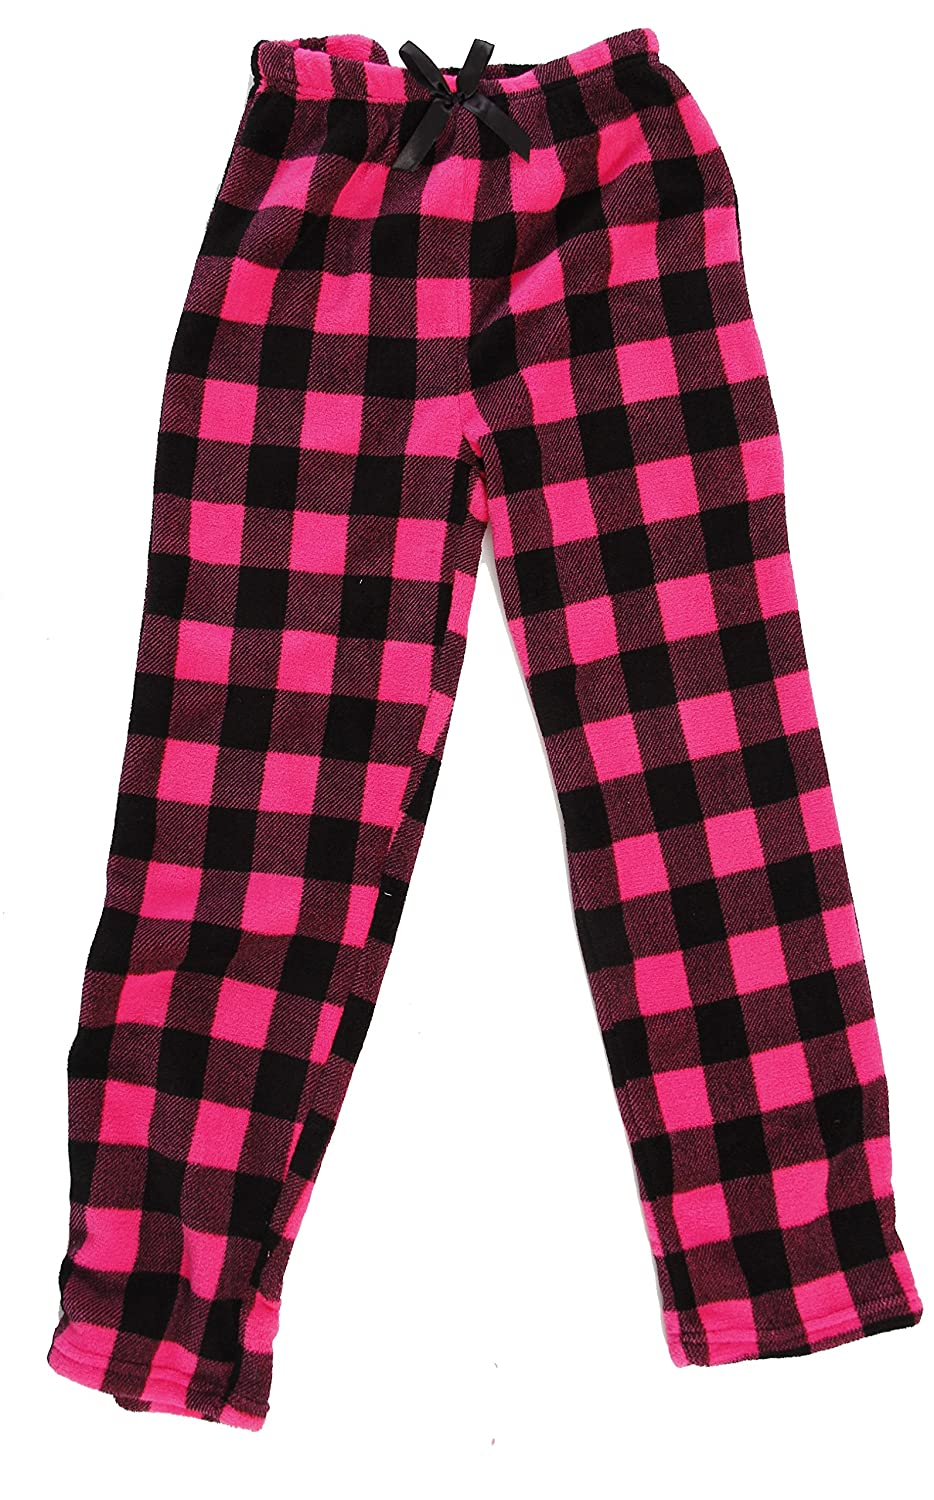 884192bad263 Top 10 wholesale Red Plaid Pajama Bottoms - Chinabrands.com